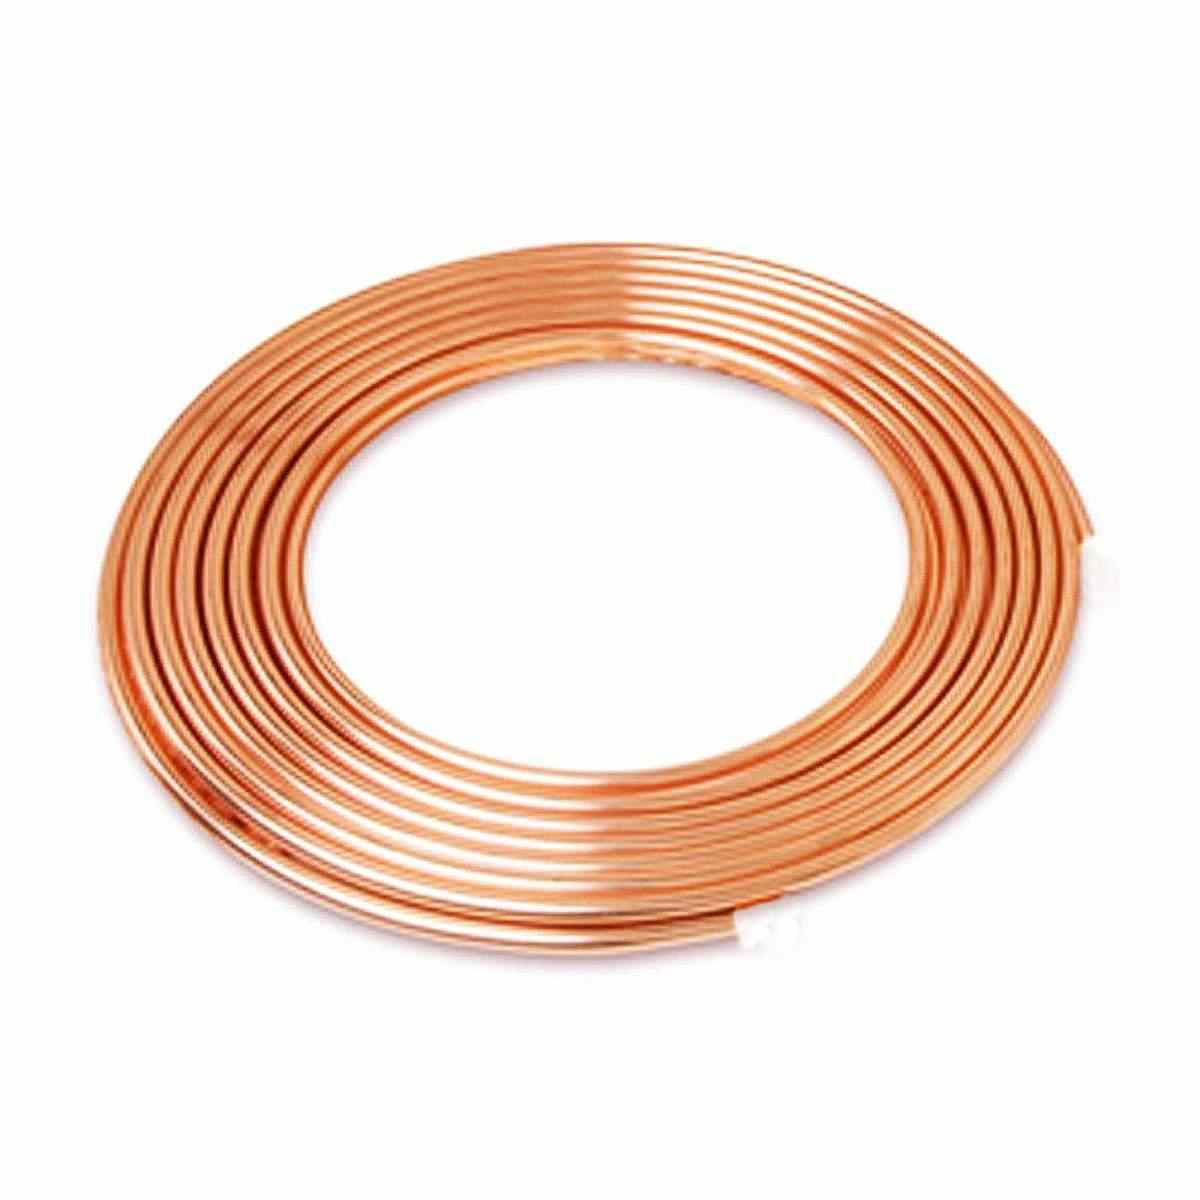 """5m 3/8""""inch Soft Coil  Pipe Copper Brass Tube Hose Air Conditioner  Tube Refrigeration Copper Pipe Refrigerant Gas DIY Cooling"""